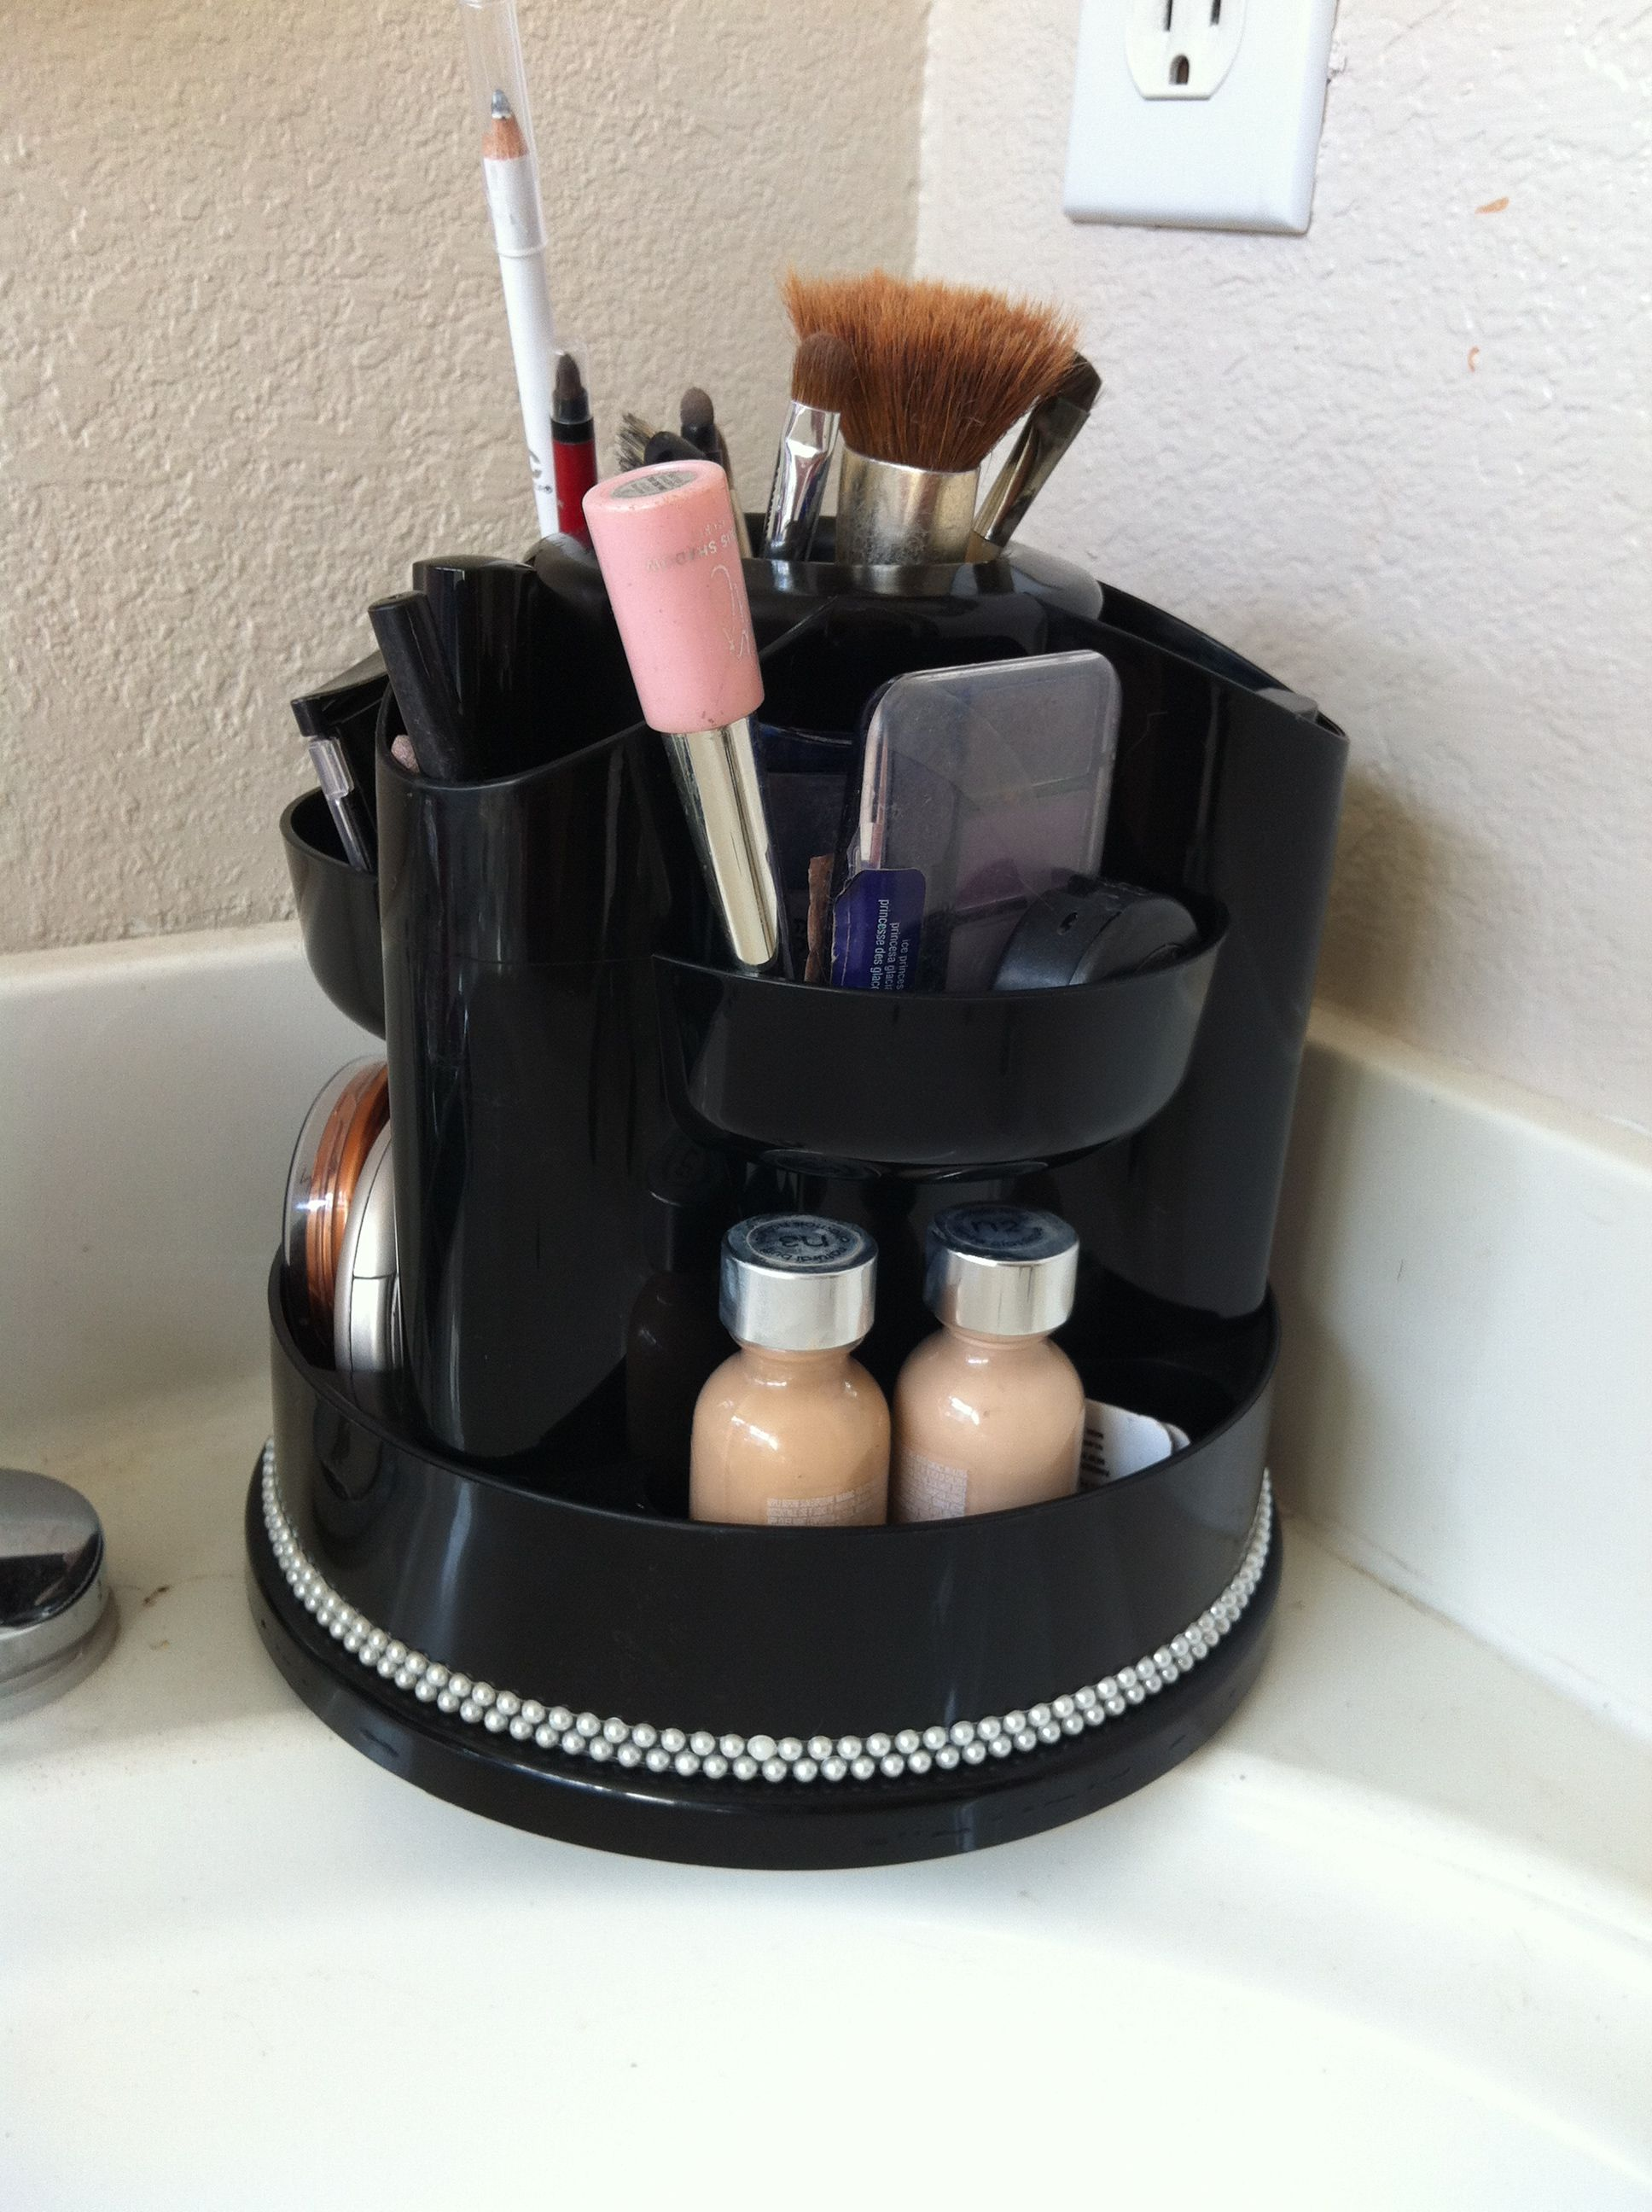 Small Desk Organizer Rotating Desk Organizer Used For Everyday Makeup 10 At